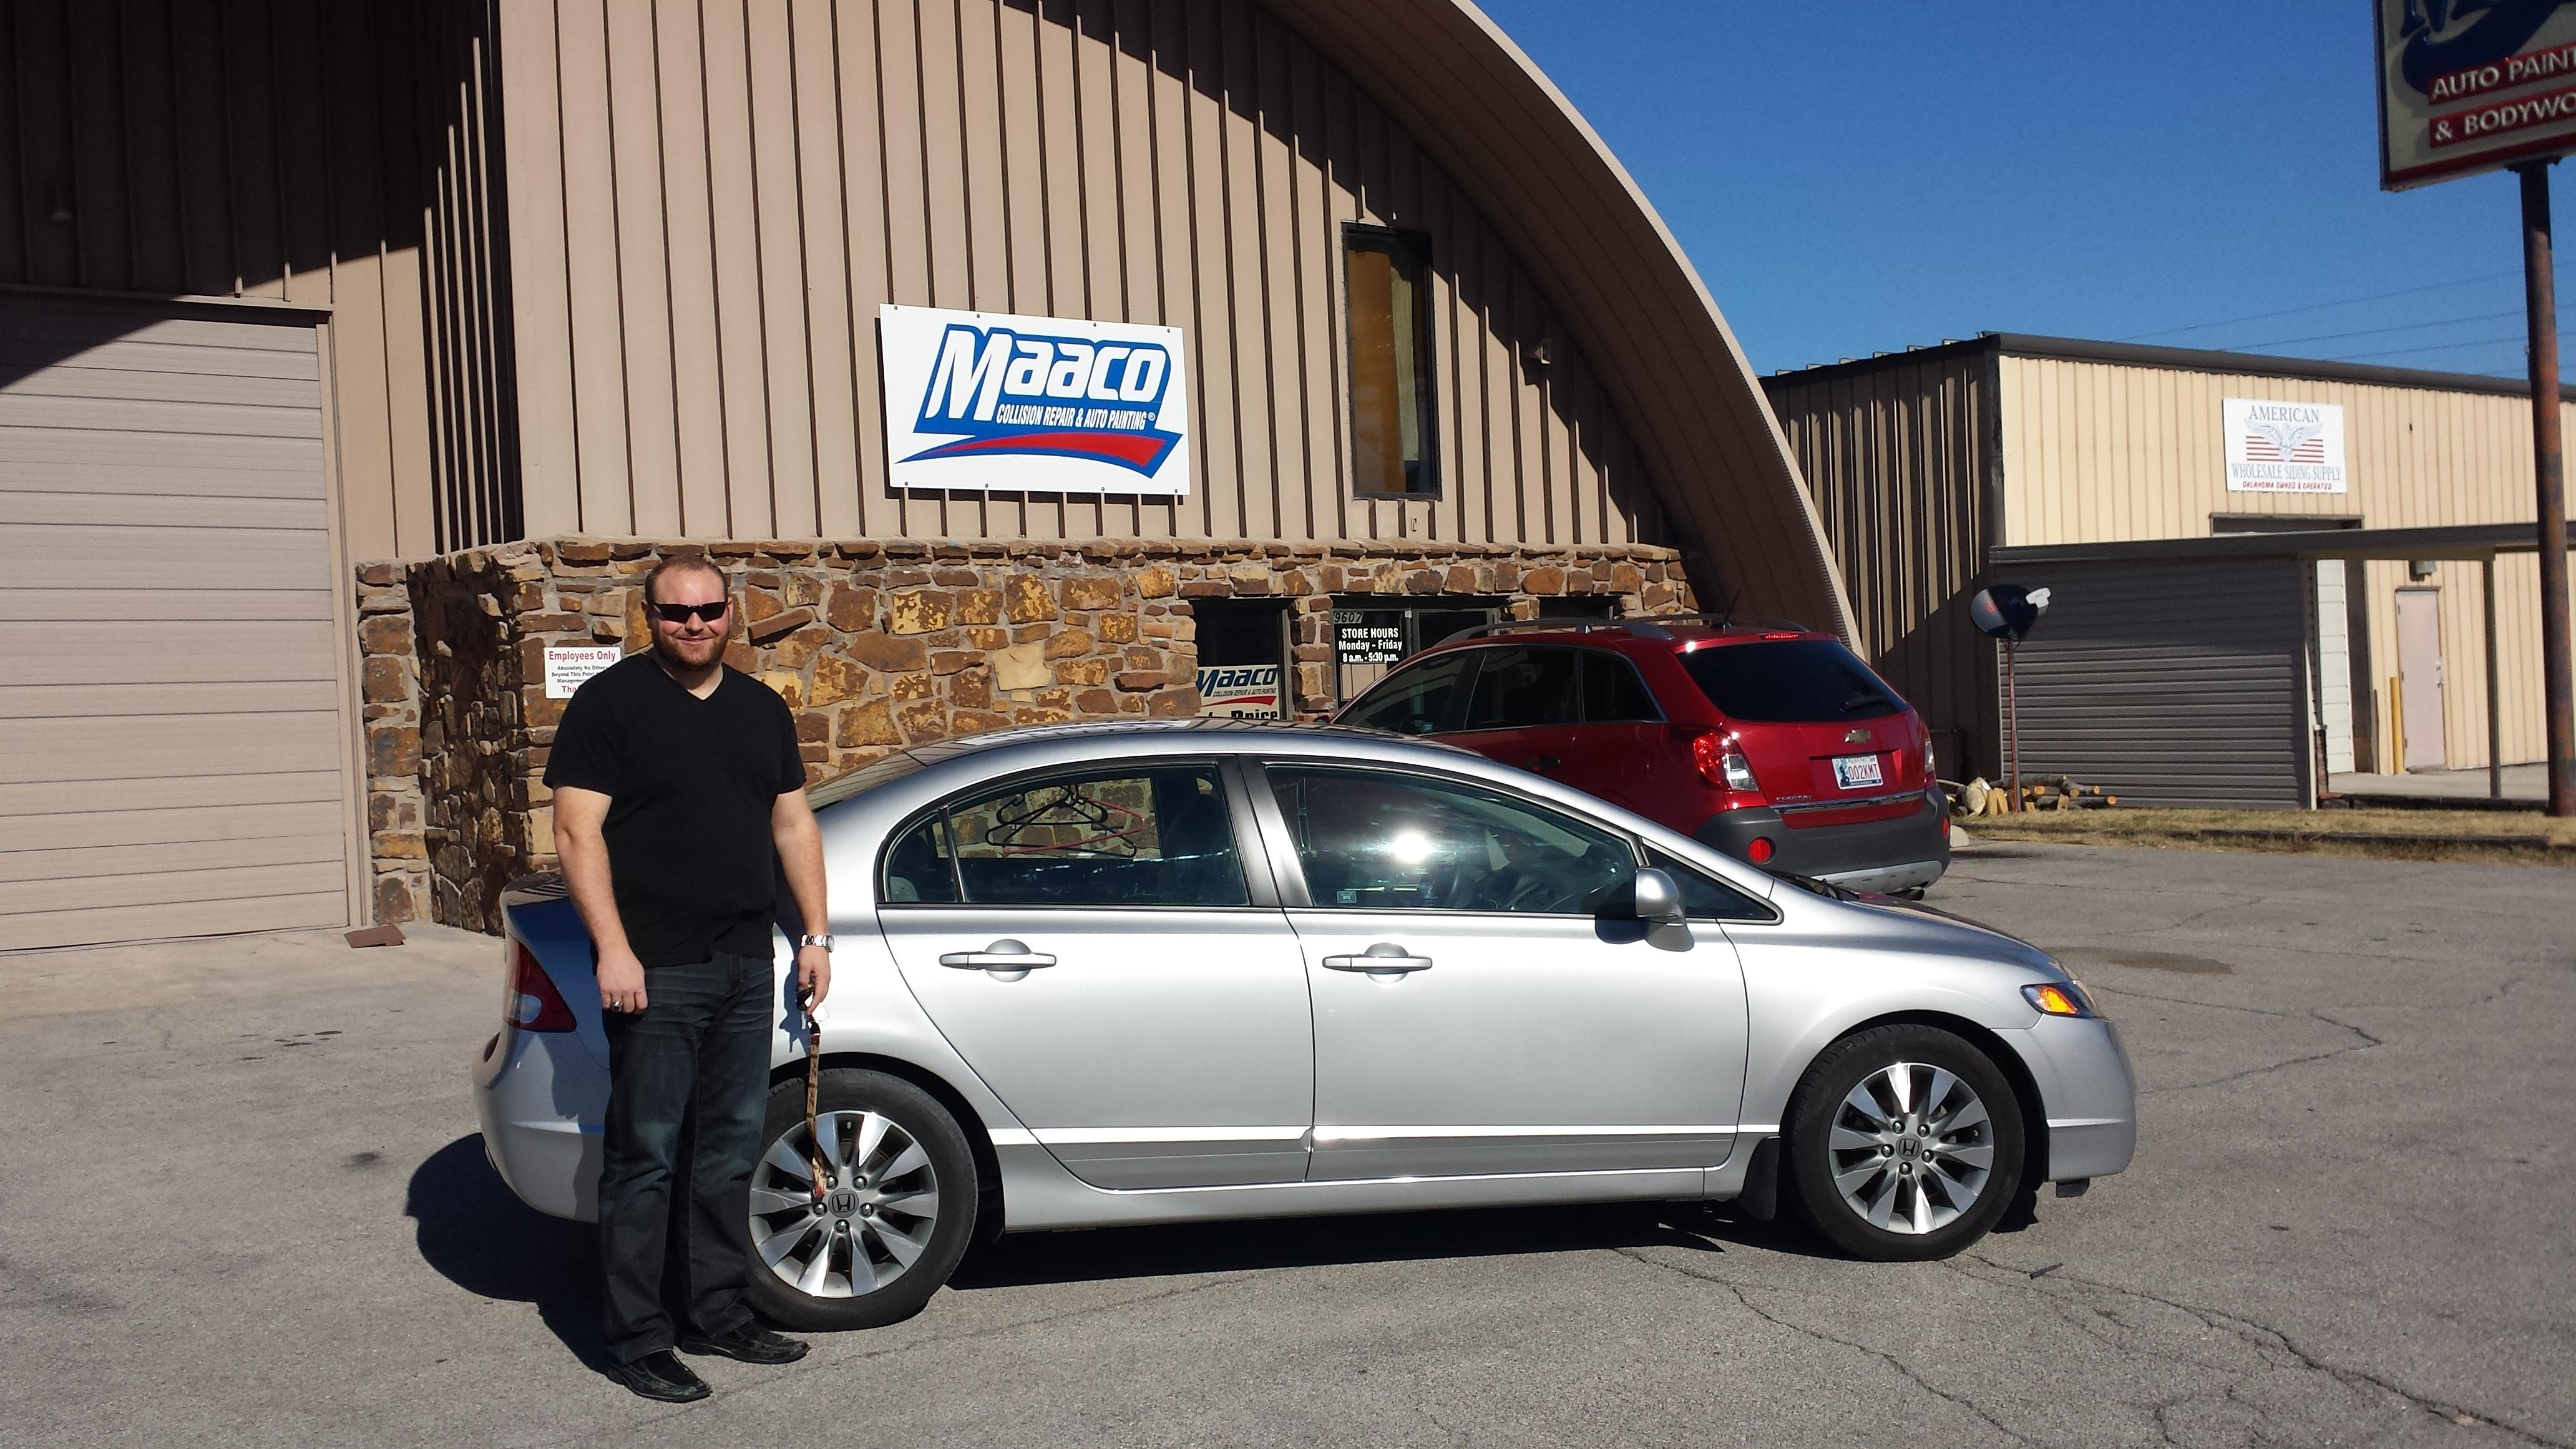 Maaco collision repair auto painting closed in kansas for Maaco paint reviews